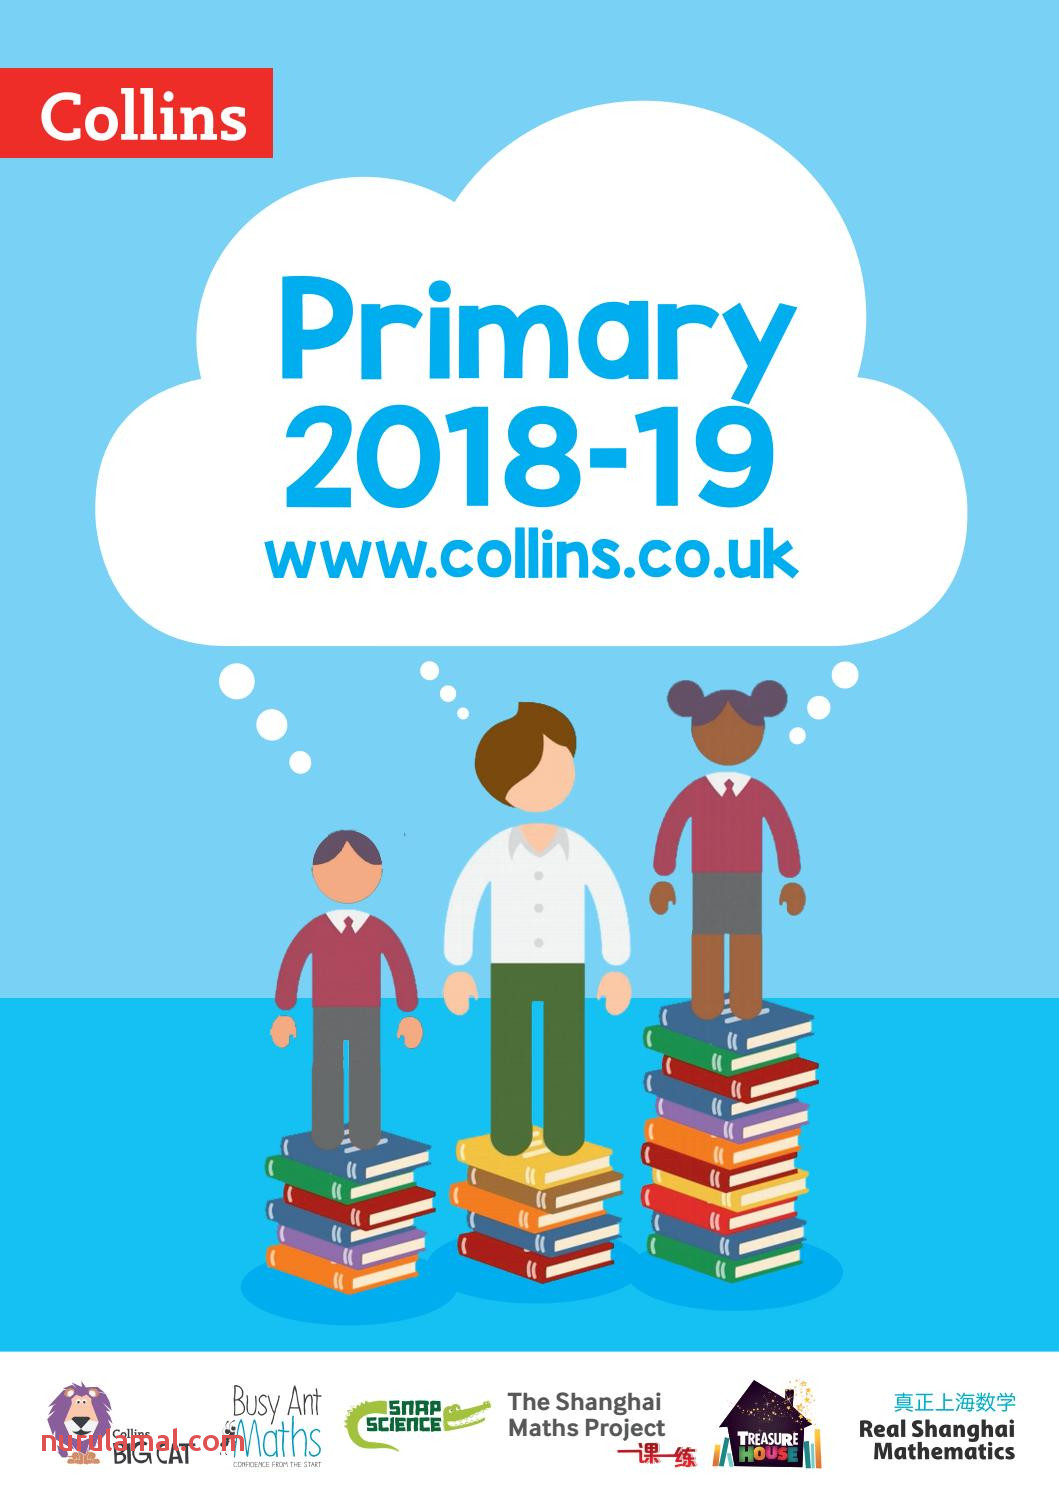 Collins Primary Catalogue 2018 2019 by Collins issuu